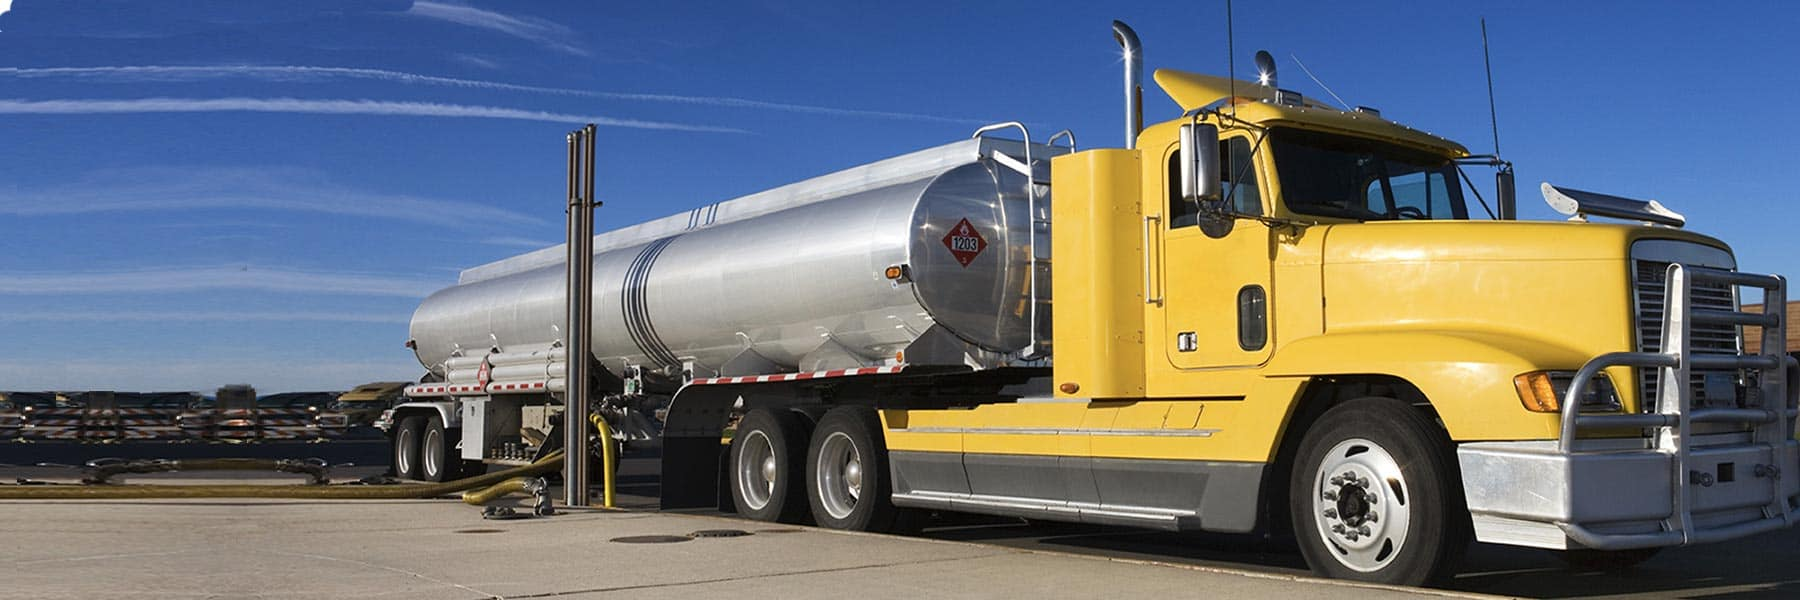 Large bright yellow gas tanker truck parked for filling up on bright sunny day with deep blue sky